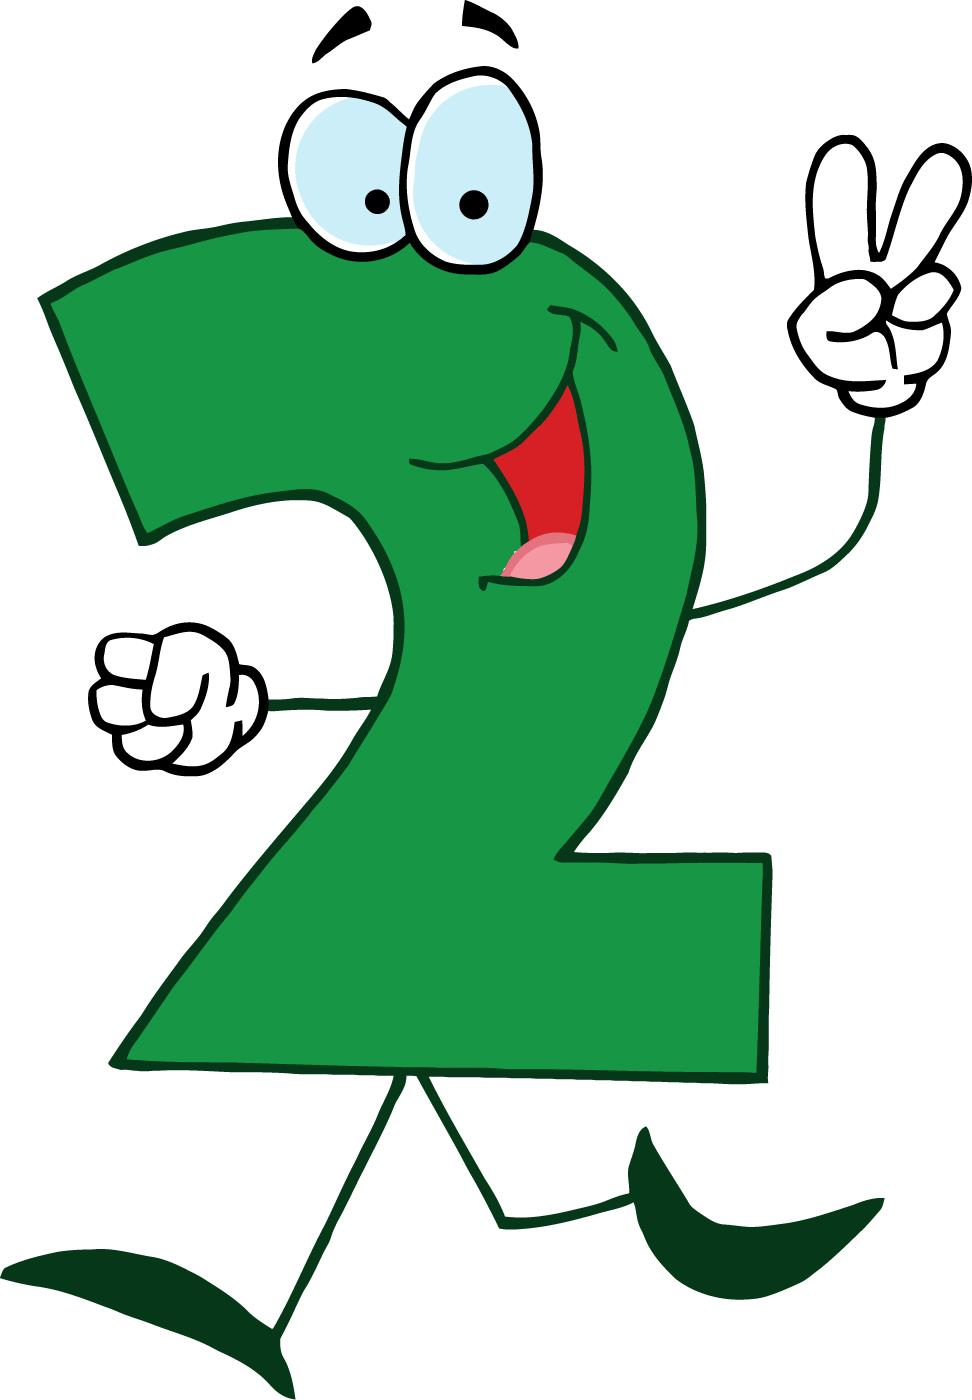 jpg_1237-Cartoon-Character-Happy-Numbers-2.jpg